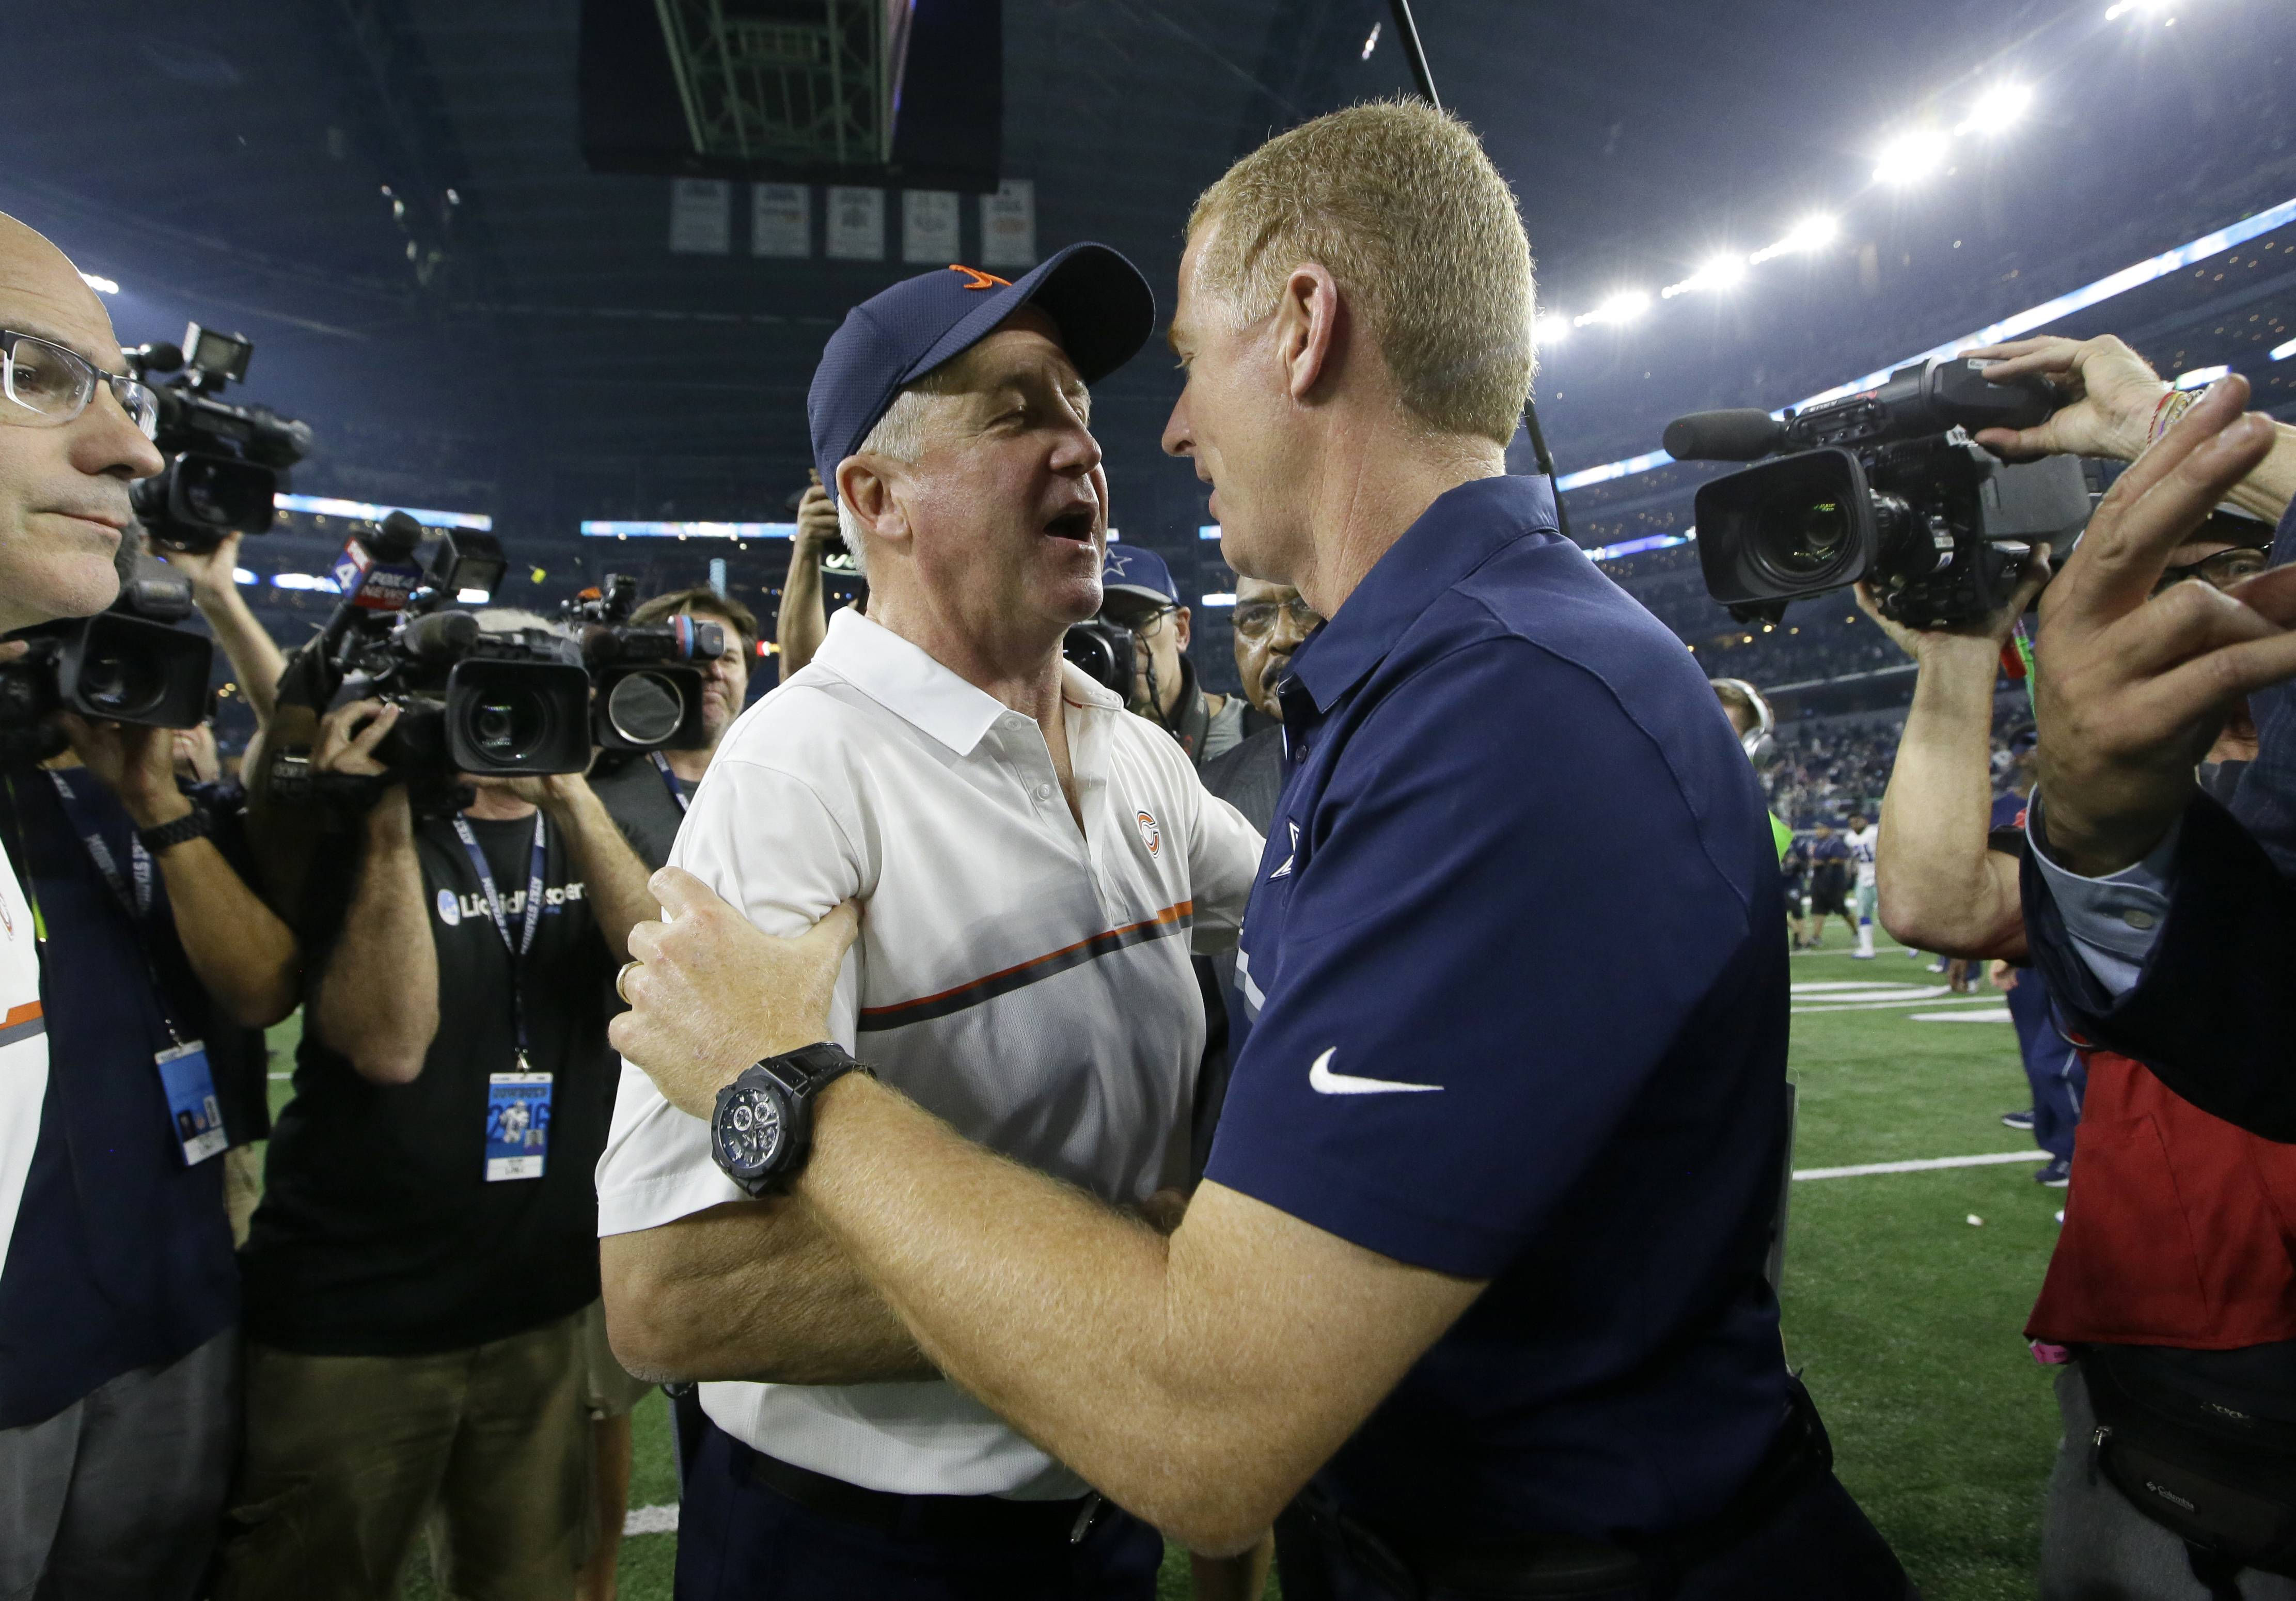 Chicago Bears head coach John Fox, left, and Dallas Cowboys head coach Jason Garrett, right, greet each other after their NFL football game, Sunday, Sept. 25, 2016, in Arlington, Texas. (AP Photo/LM Otero)